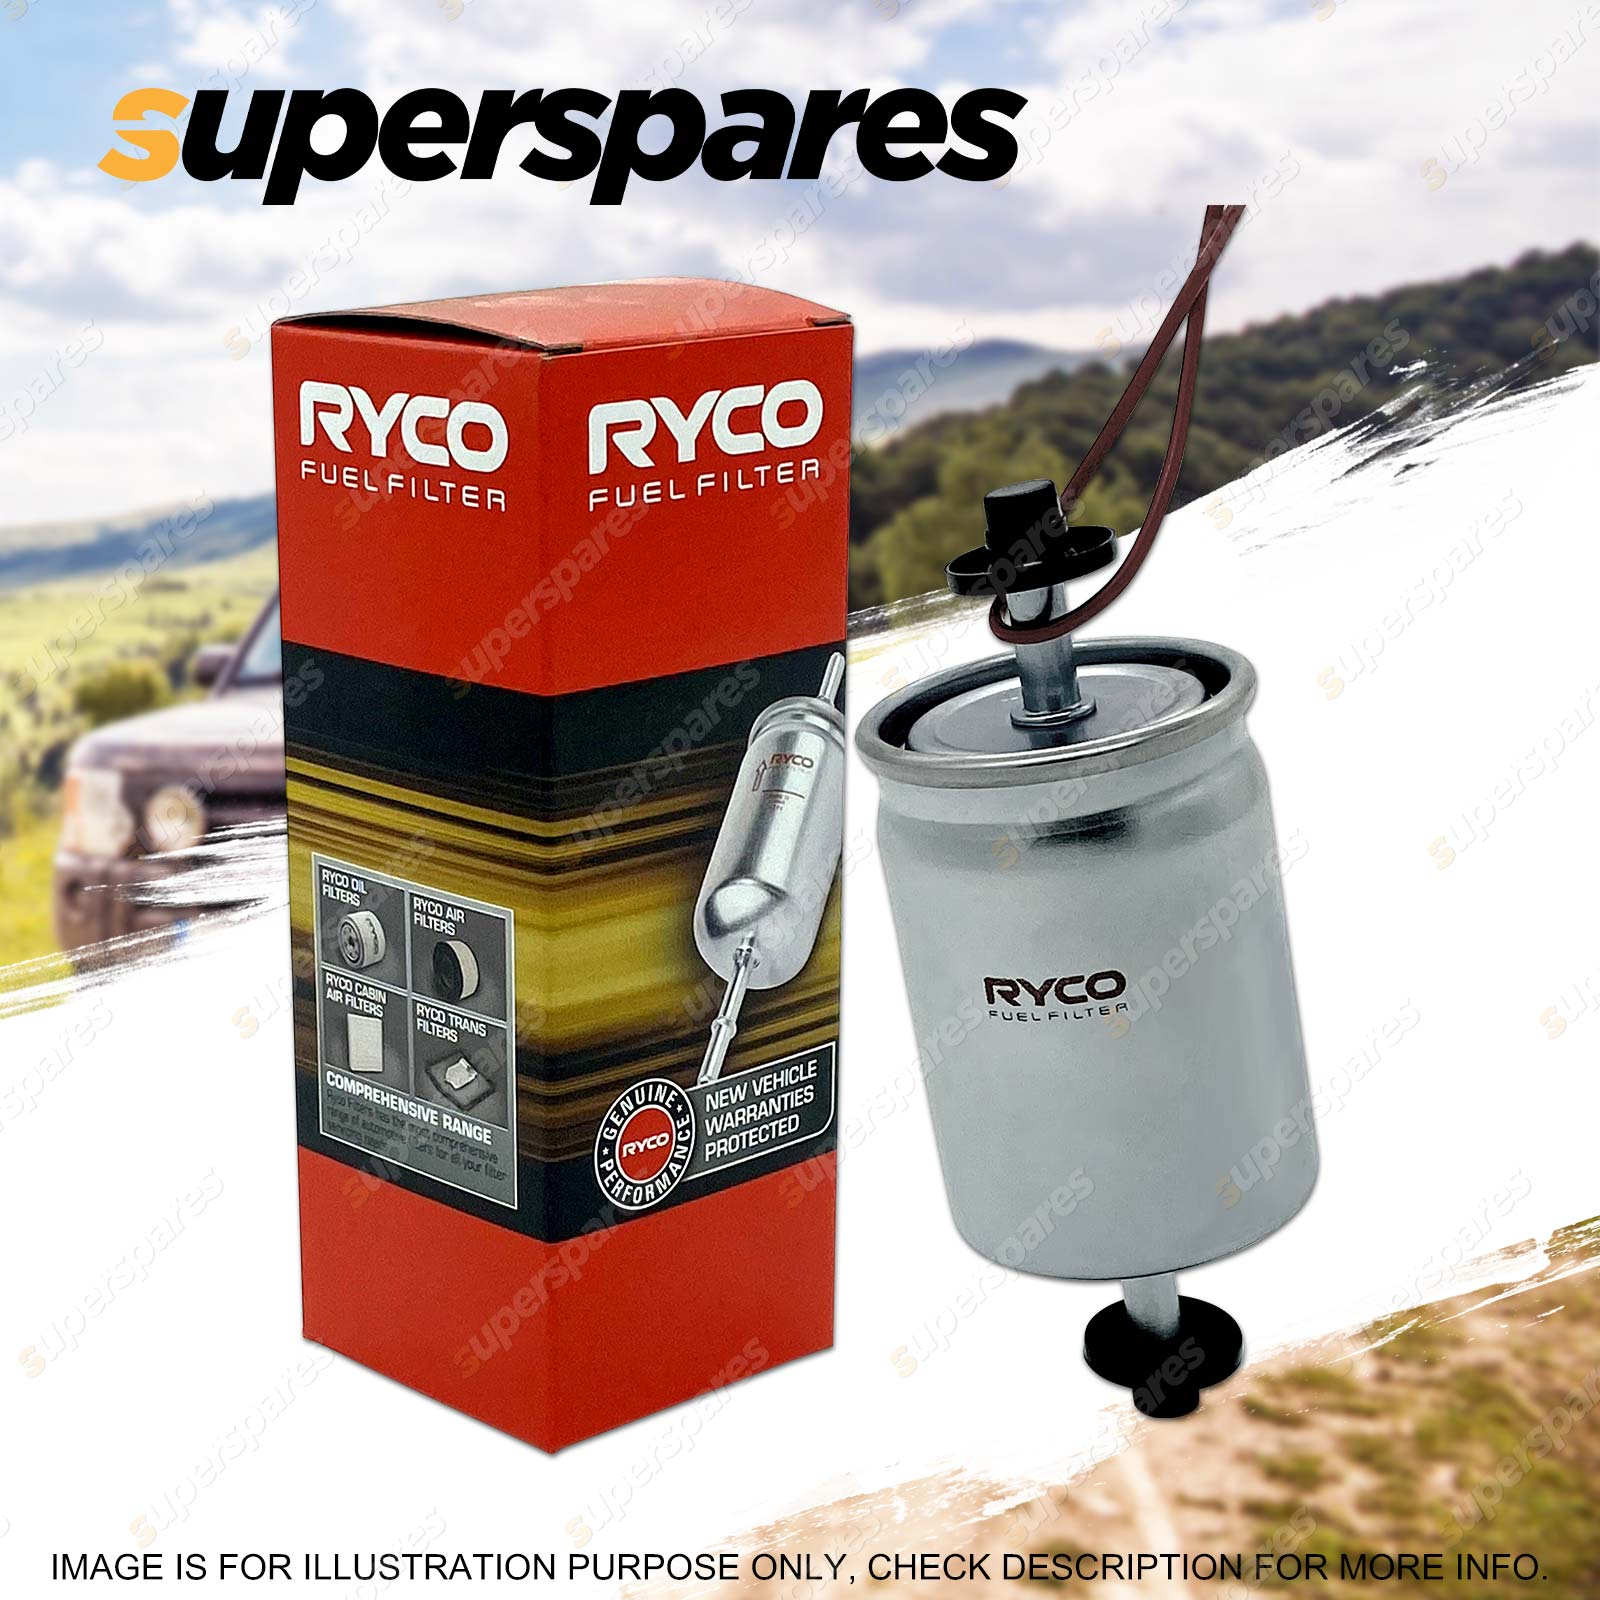 hight resolution of ryco fuel filter for renault laguna master megane scenic trafic peugeot 605